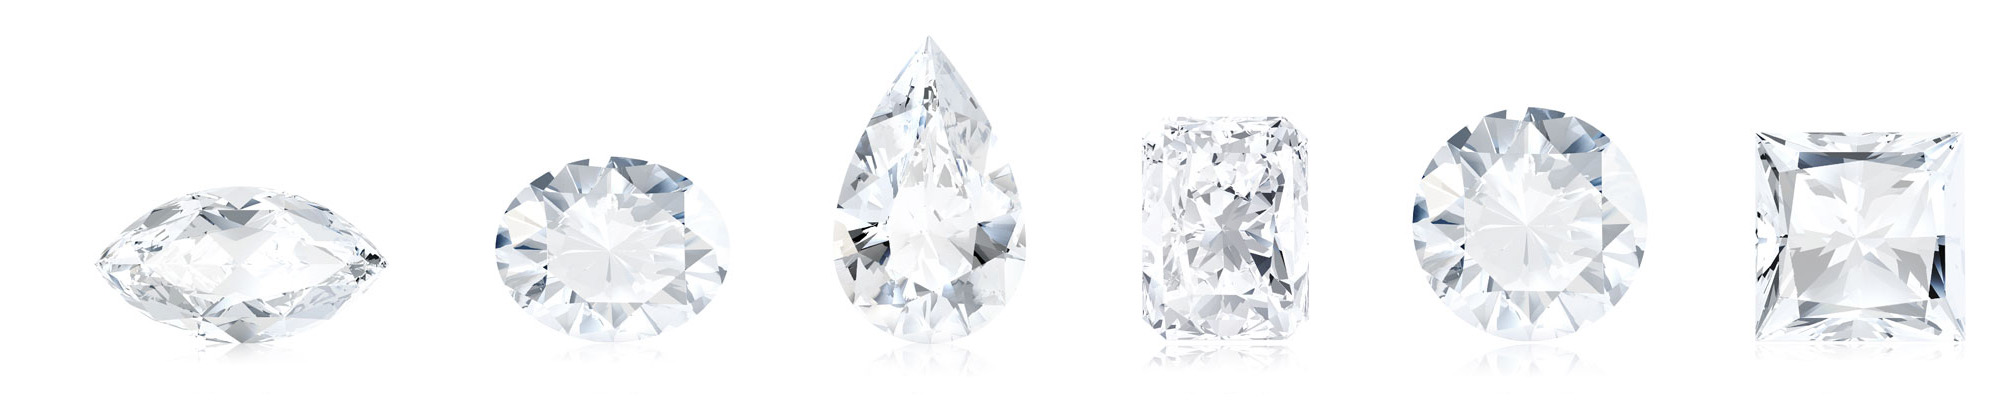 Diamonds_shapes_1001.jpg